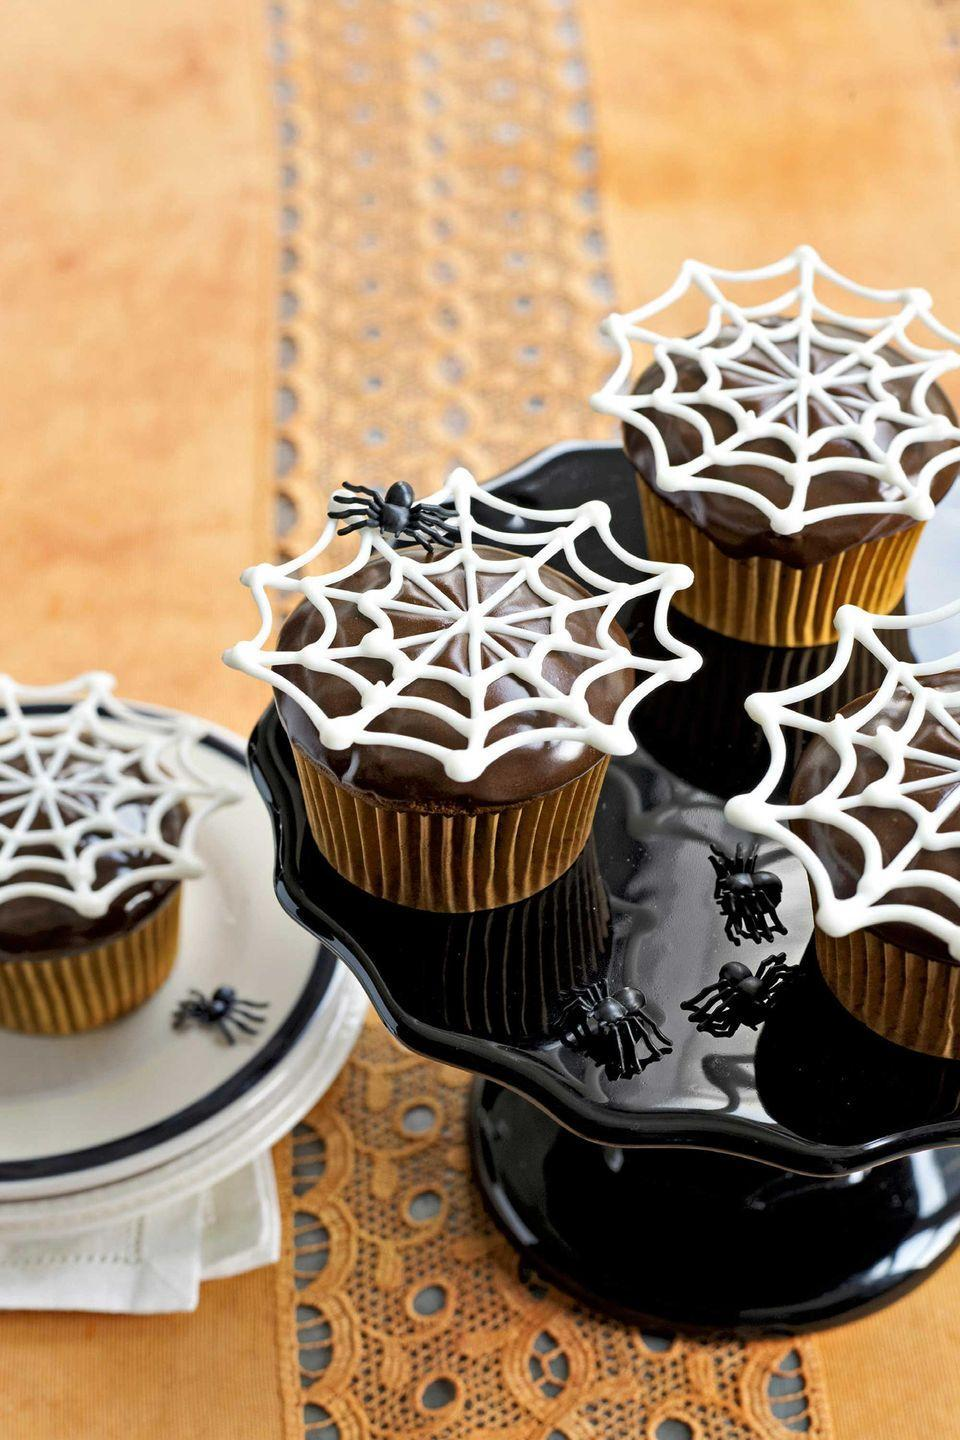 """<p>Super-easy white-chocolate toppers appear to float, Houdini-like, over chocolate cupcakes.</p><p><strong><a href=""""https://www.countryliving.com/food-drinks/recipes/a3015/itsy-bitsy-spiderwebs-cupcakes-recipe/"""" rel=""""nofollow noopener"""" target=""""_blank"""" data-ylk=""""slk:Get the recipe"""" class=""""link rapid-noclick-resp"""">Get the recipe</a>.</strong></p>"""